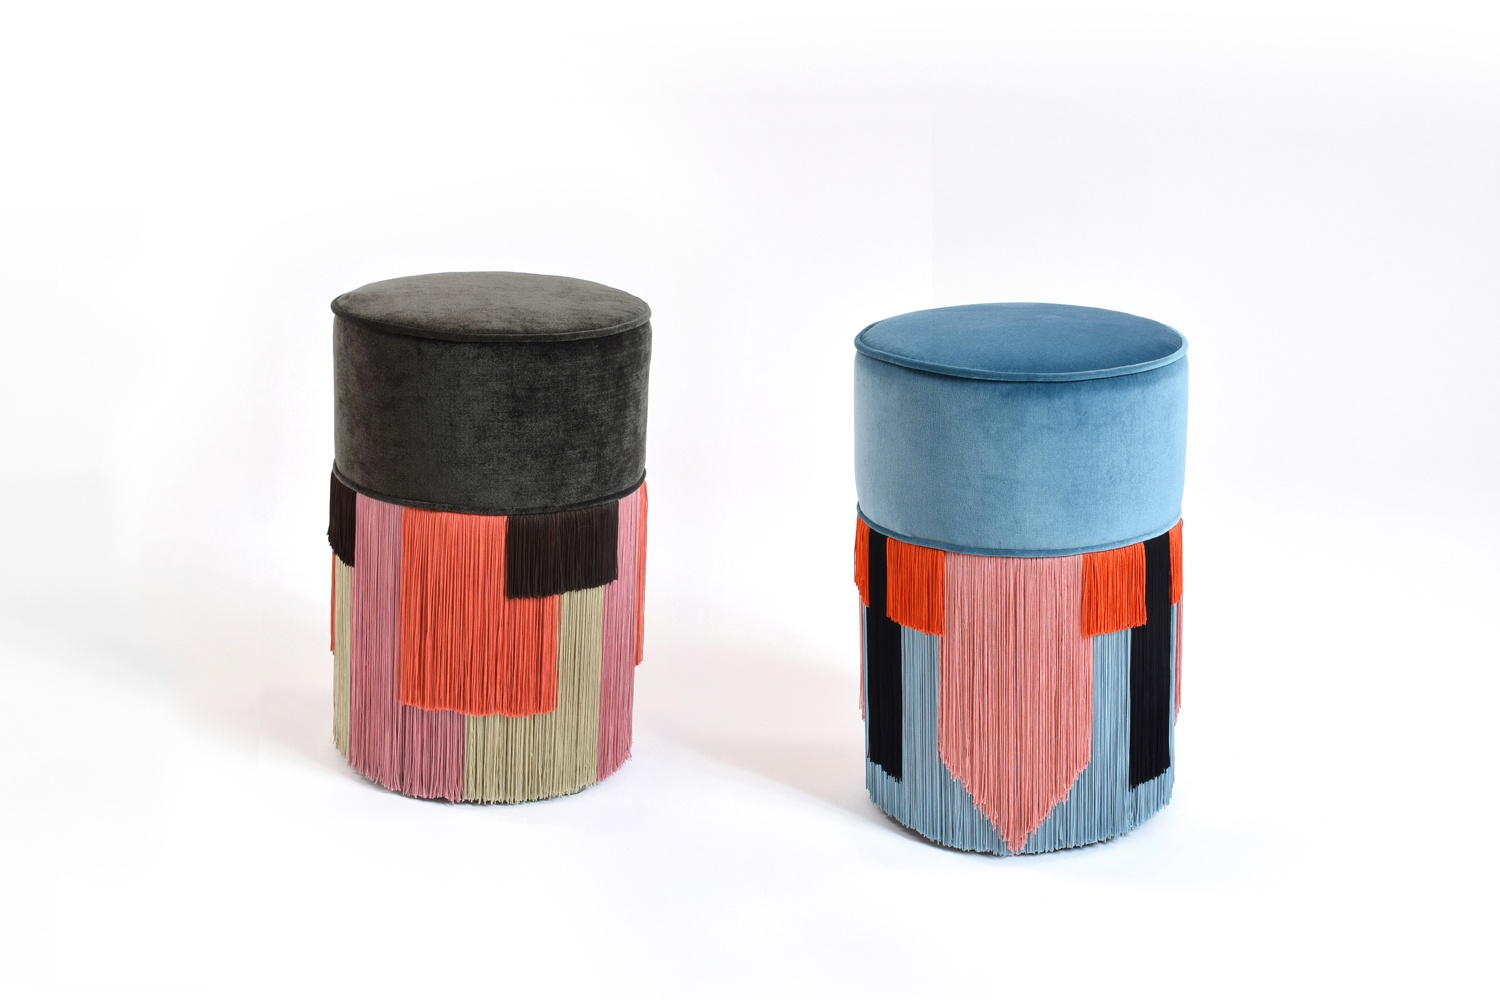 lorenza-bozzoli-presents-couture-pouf-for-luisa-via-roma-home-yellowtrace-01